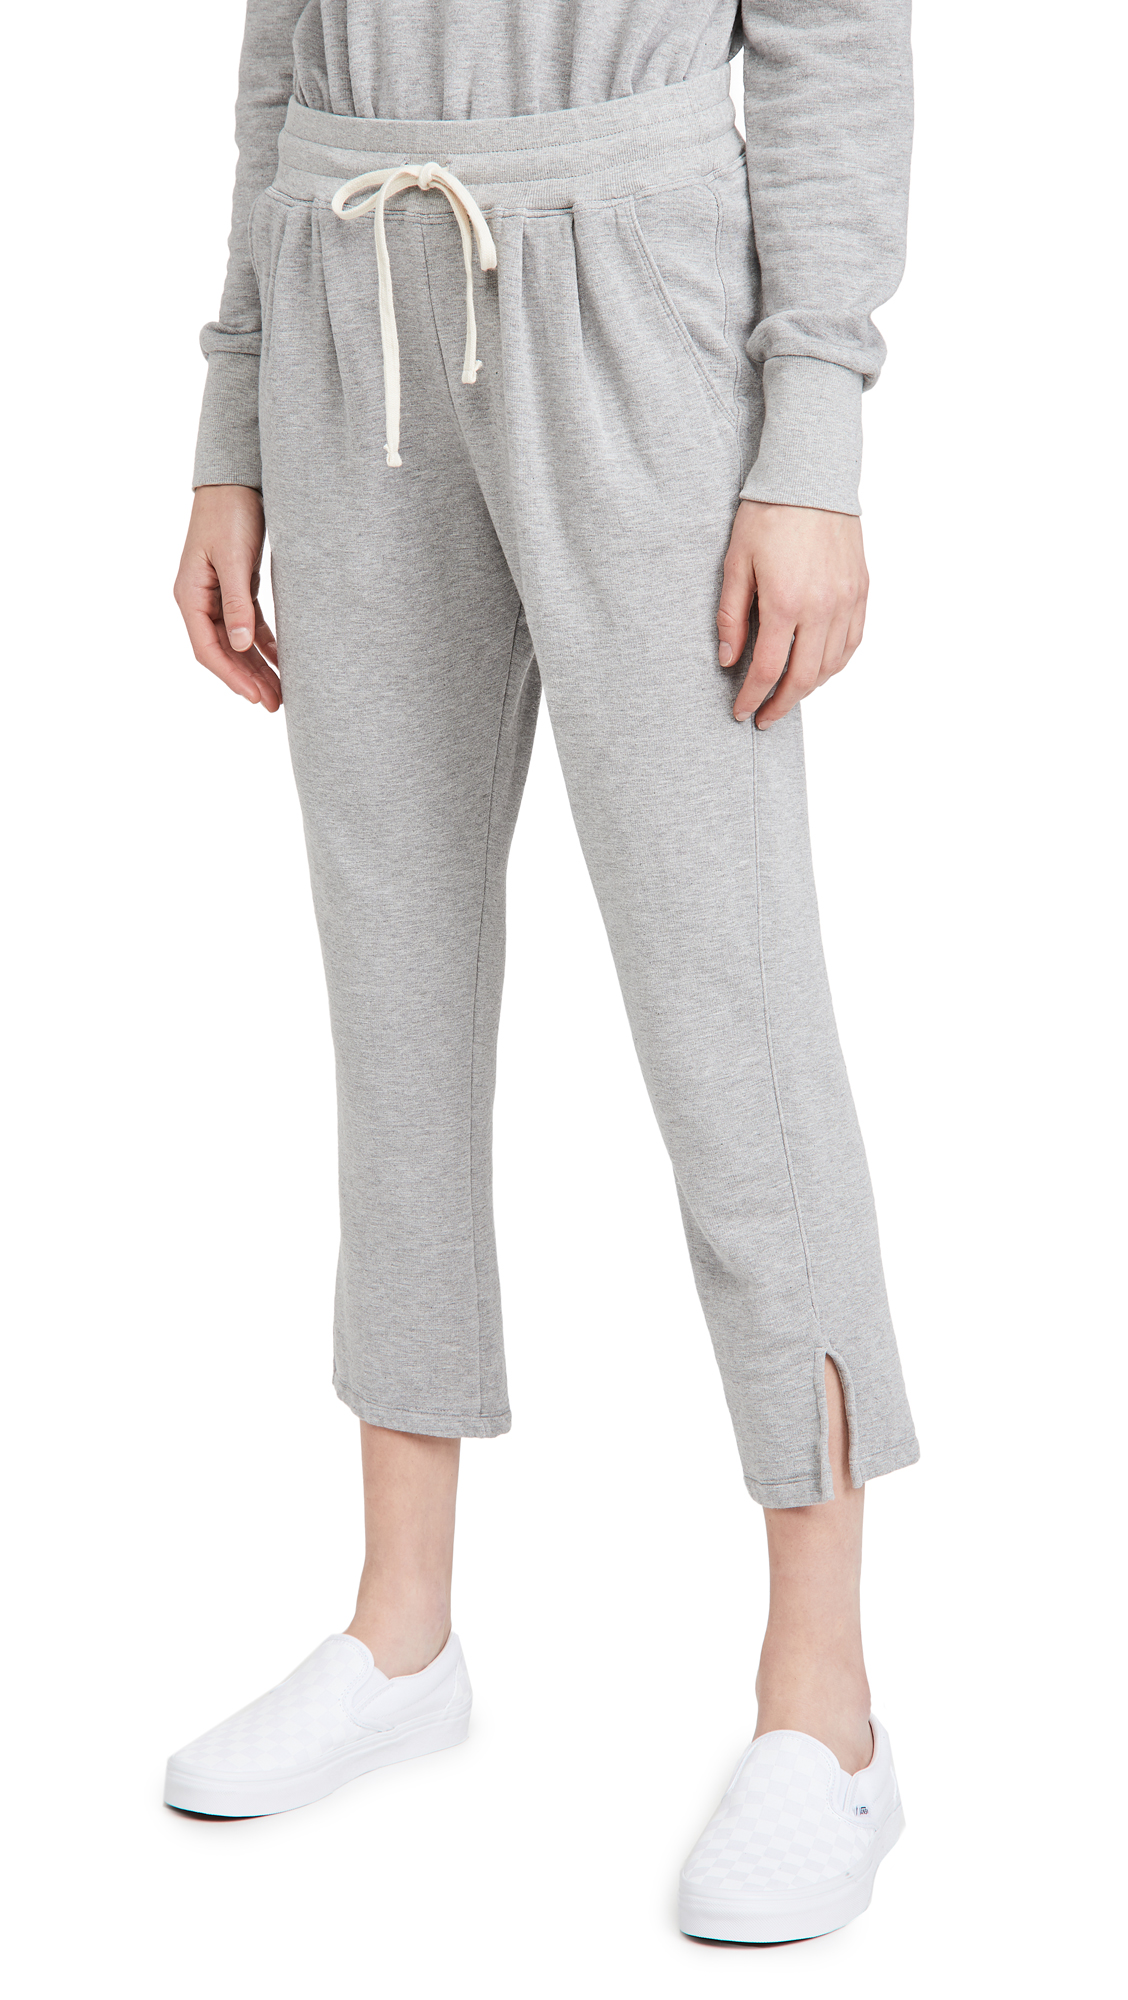 SUNDRY Pleated Trouser Sweats